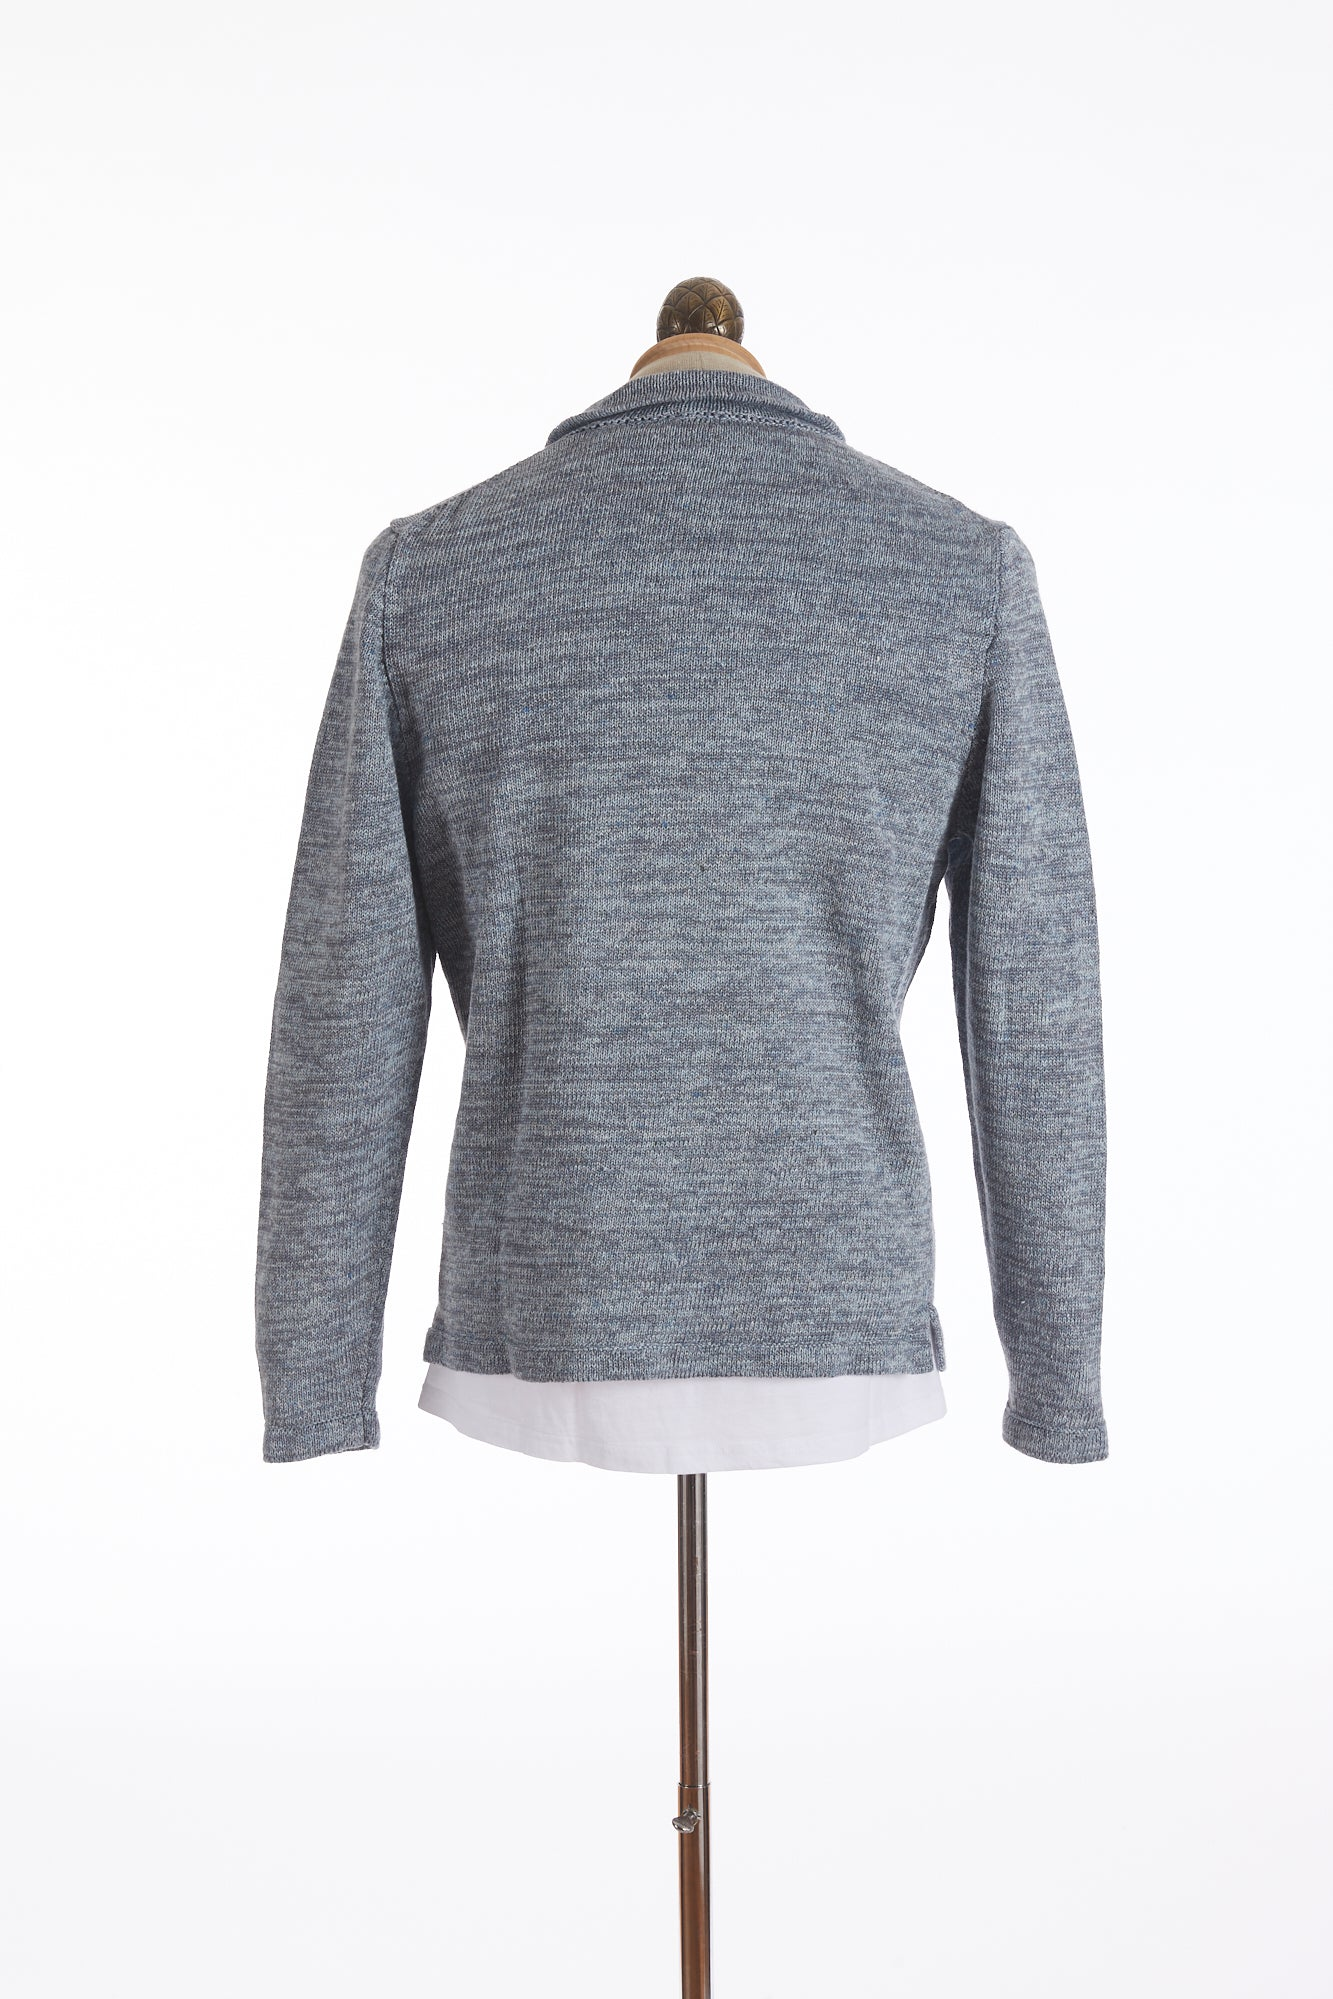 Inis Meáin Light Blue Linen Sweater Shirt Jacket - Sweaters - Inis Meáin - LALONDE's